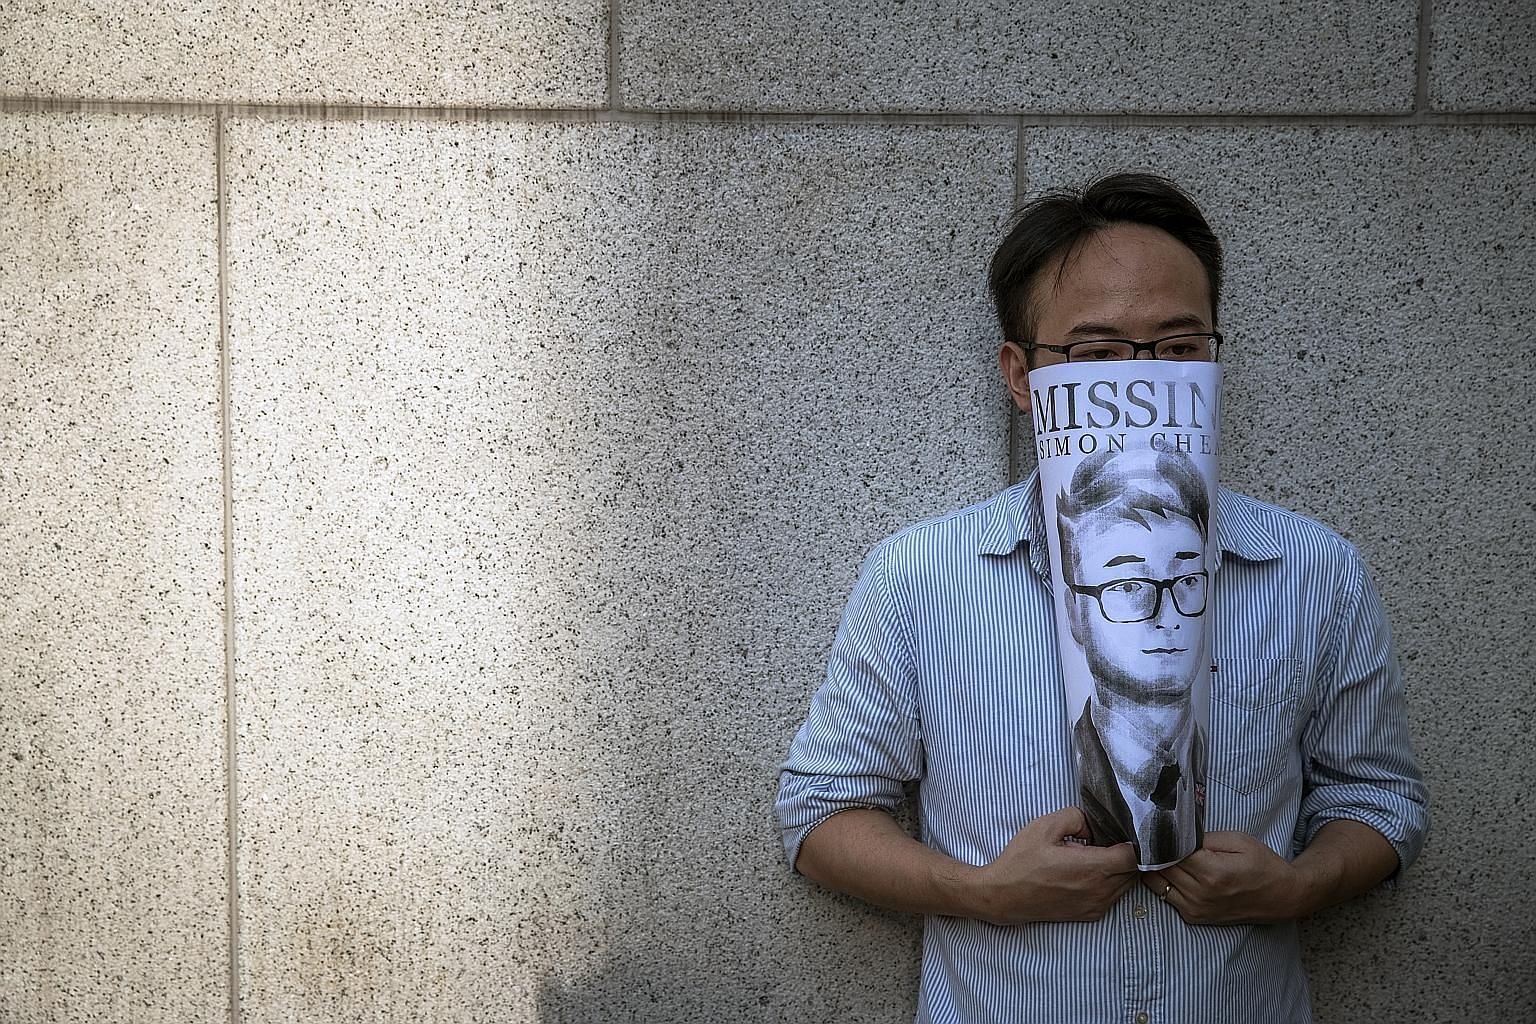 An activist holding an illustration of Mr Simon Cheng at a rally outside the British consulate in Hong Kong on Wednesday. The UK Foreign Office said neither it nor Mr Cheng's family has been able to speak to him since his detention. PHOTO: EPA-EFE